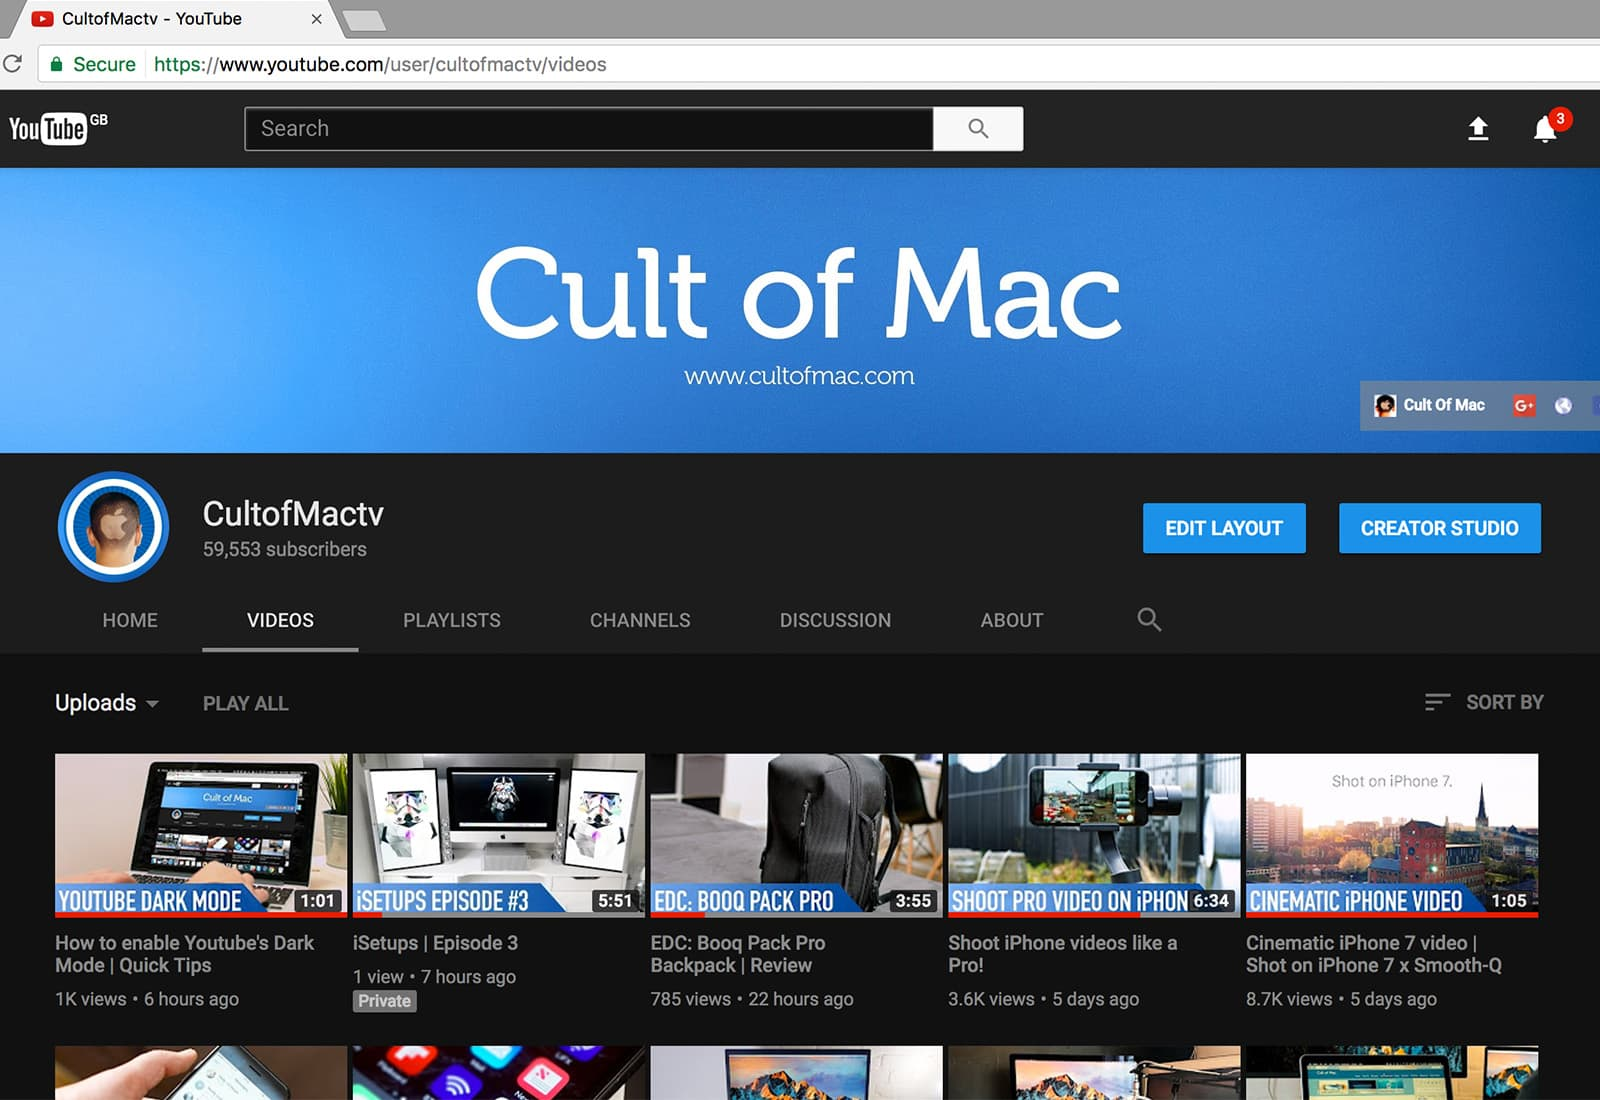 How to enable YouTube's secret dark mode | Cult of Mac